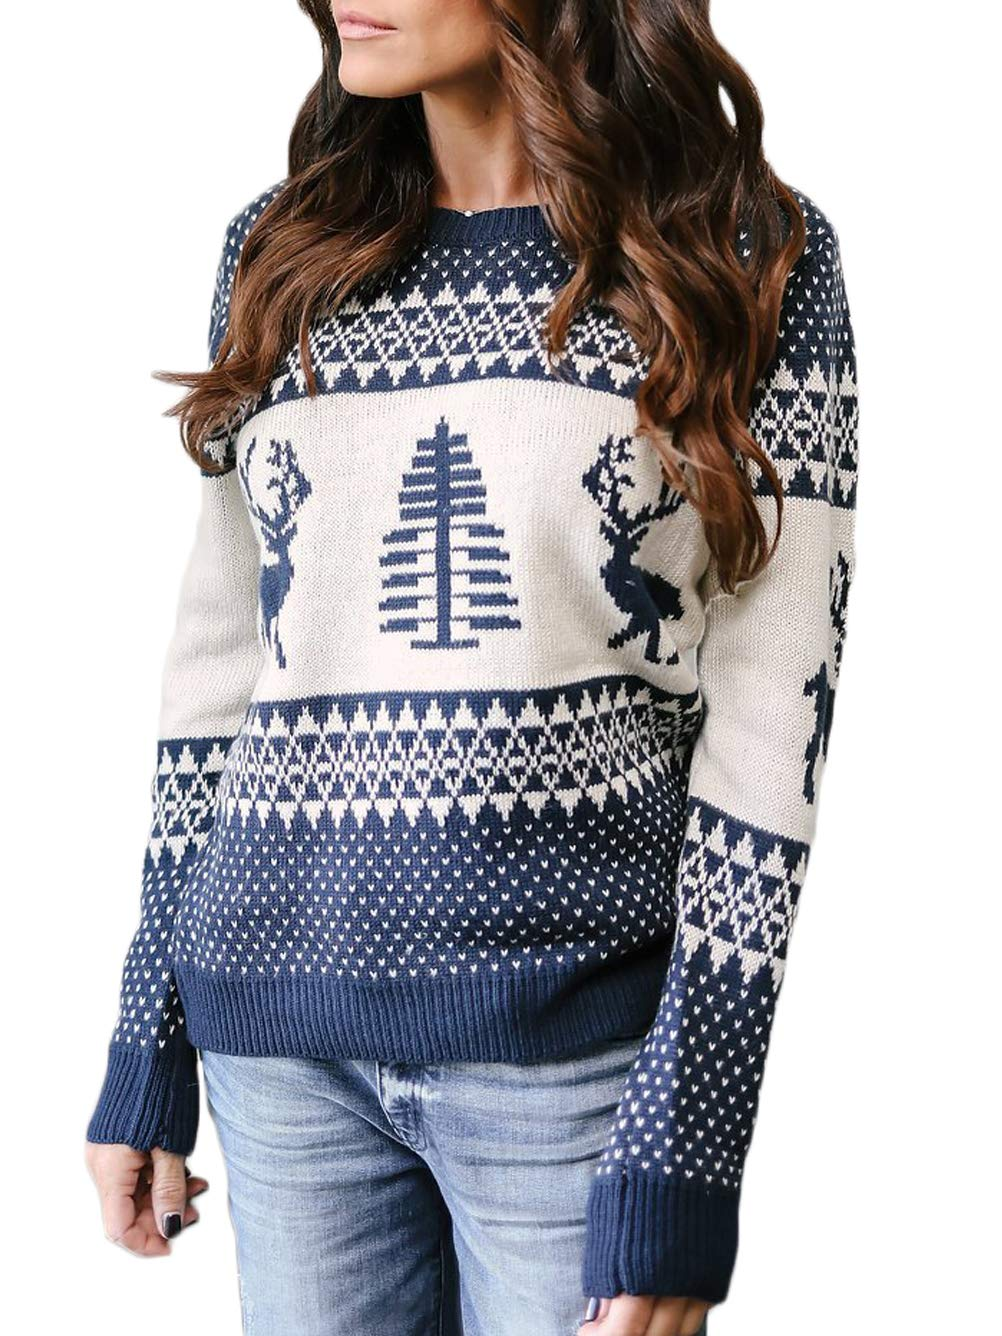 Kaei&Shi Ugly Christmas Sweater,Patterned Tree Reindeer Pullover,Knit Tops for Women,Loose Sweatshirt